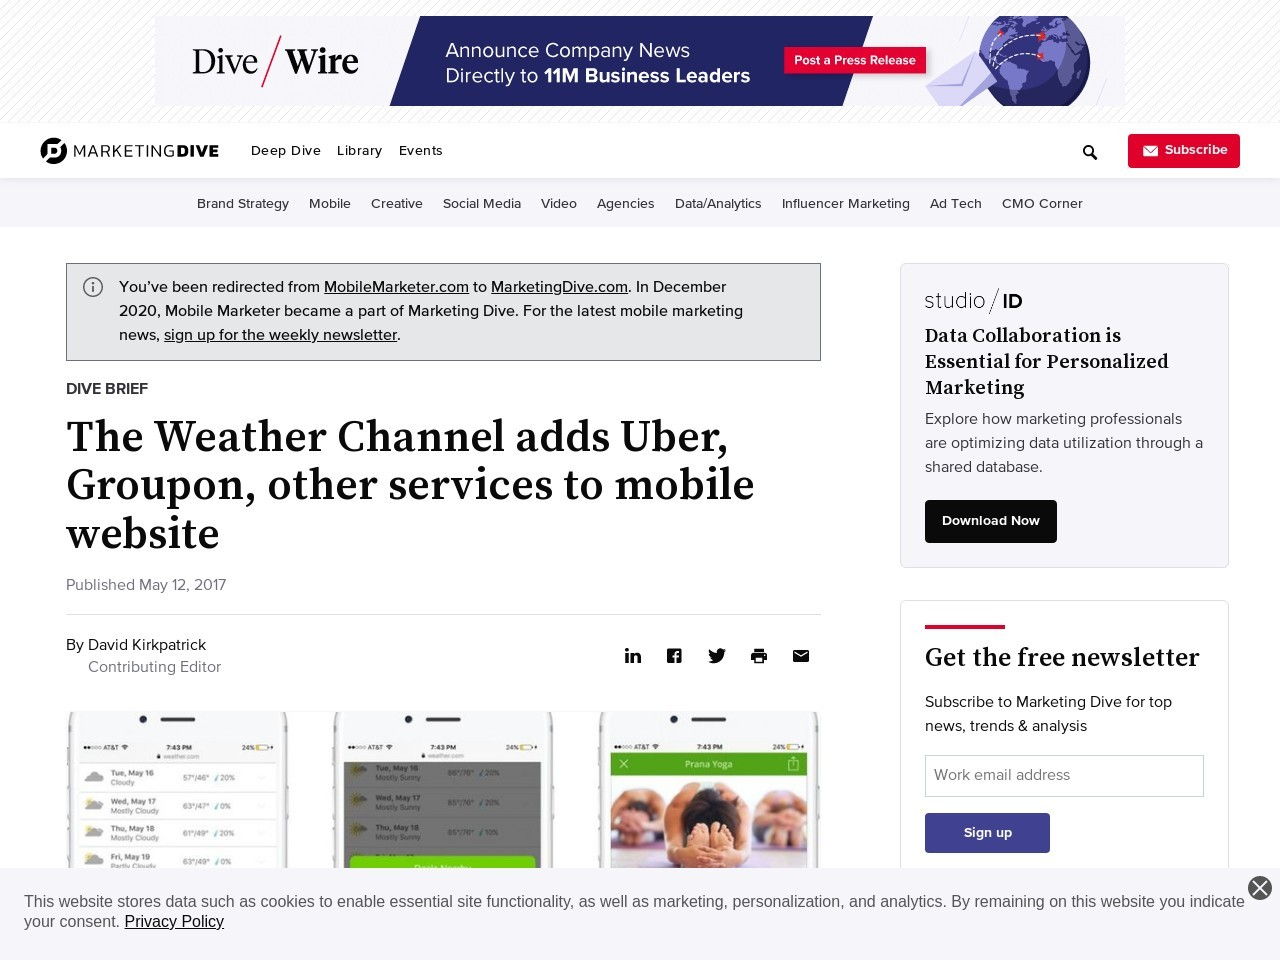 The Weather Channel adds Uber, Groupon, other services to mobile website